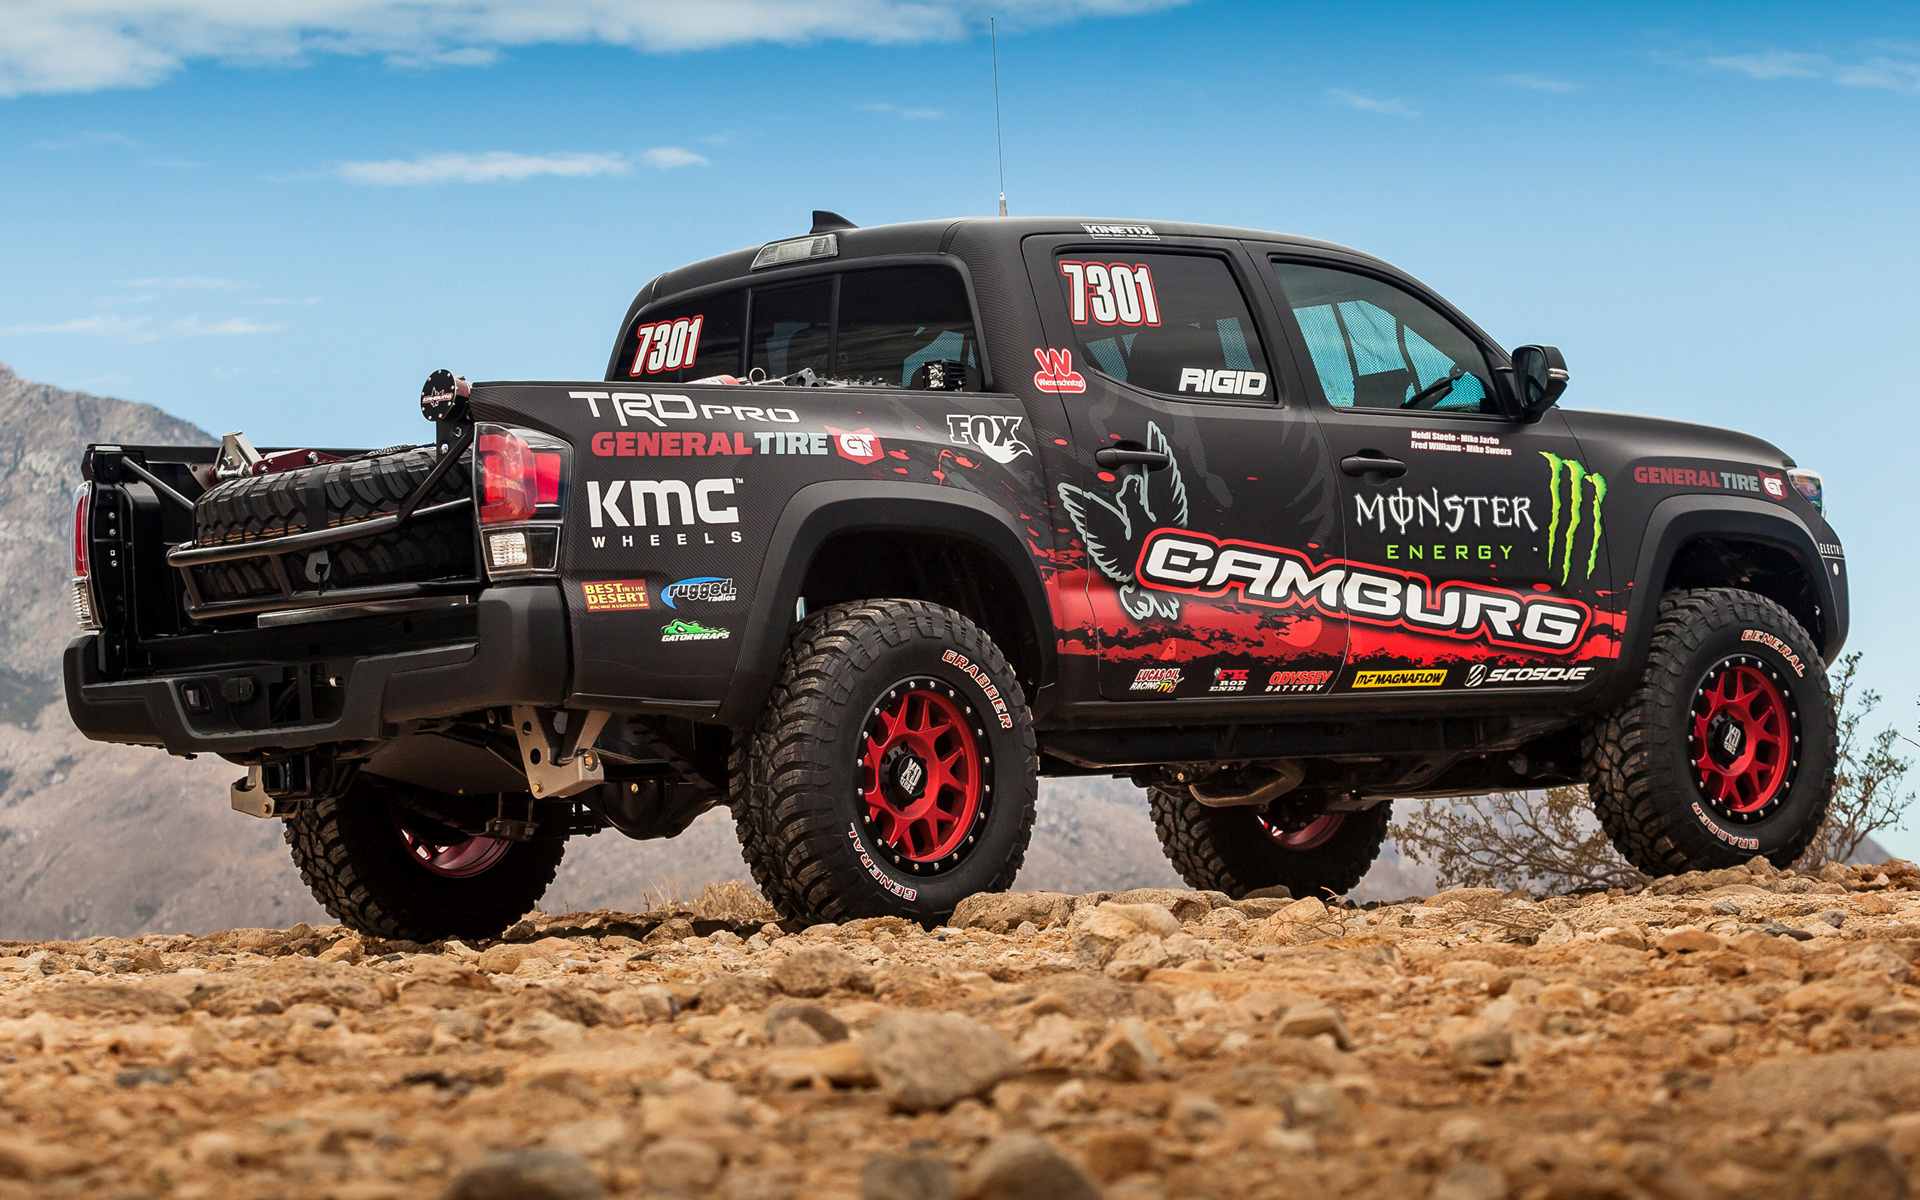 2016 Toyota Tacoma Trd Off Road >> 2016 Toyota Tacoma TRD Pro Race Truck - Wallpapers and HD ...